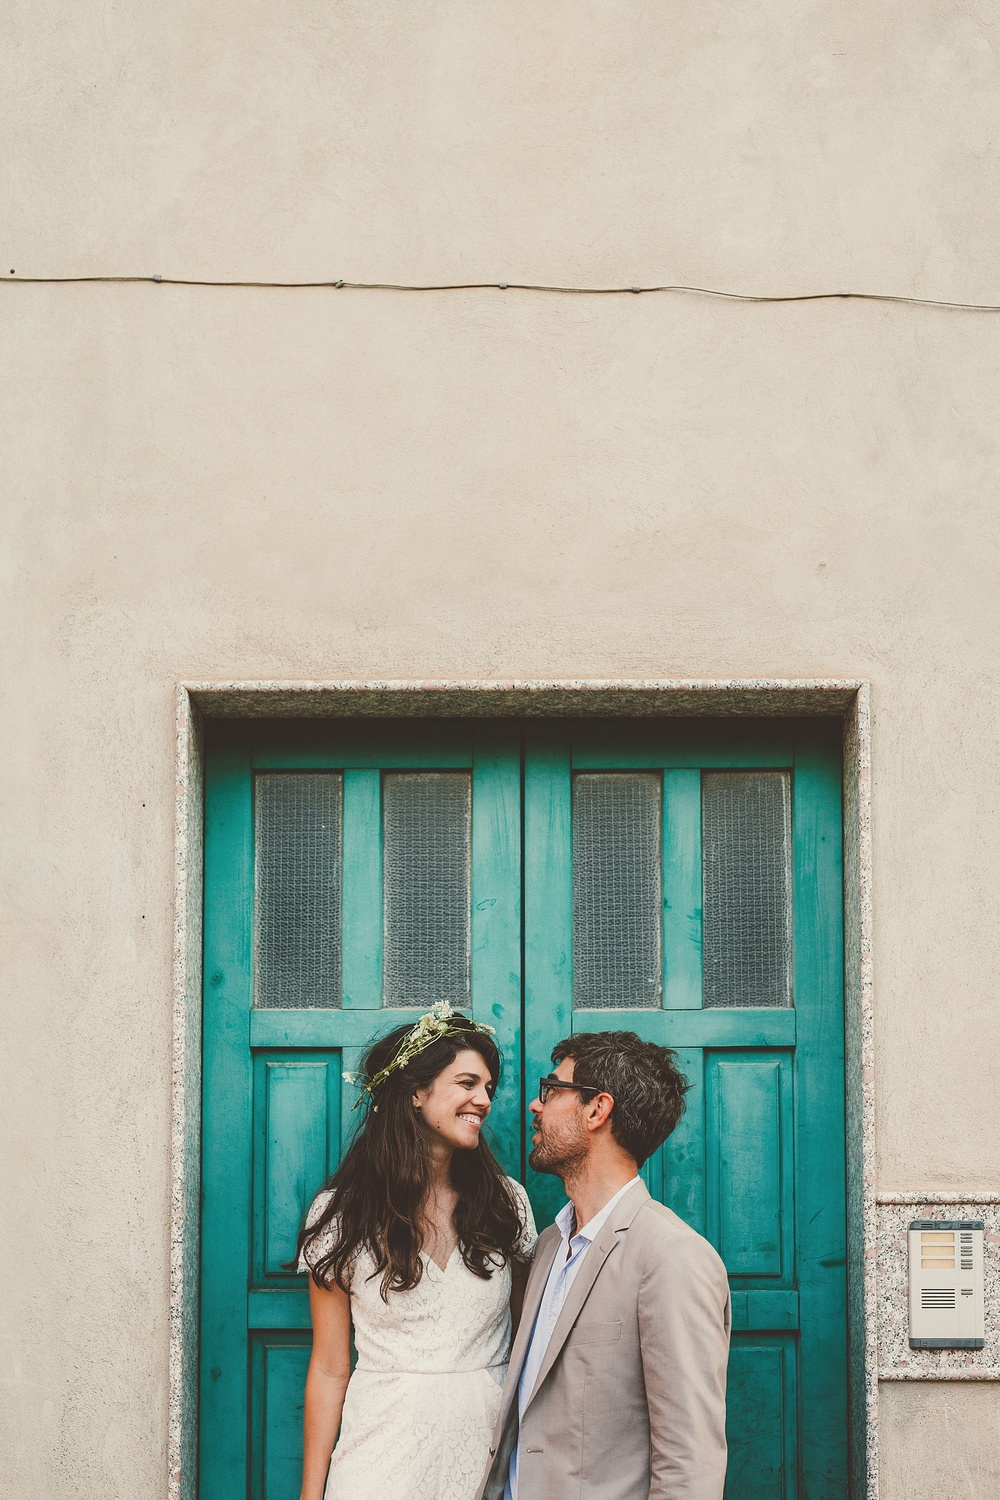 Wedding Photography Carly Romeo Photography Richmond VA Aidone Sicily Italy Teal Door Couple Portrait Wreath